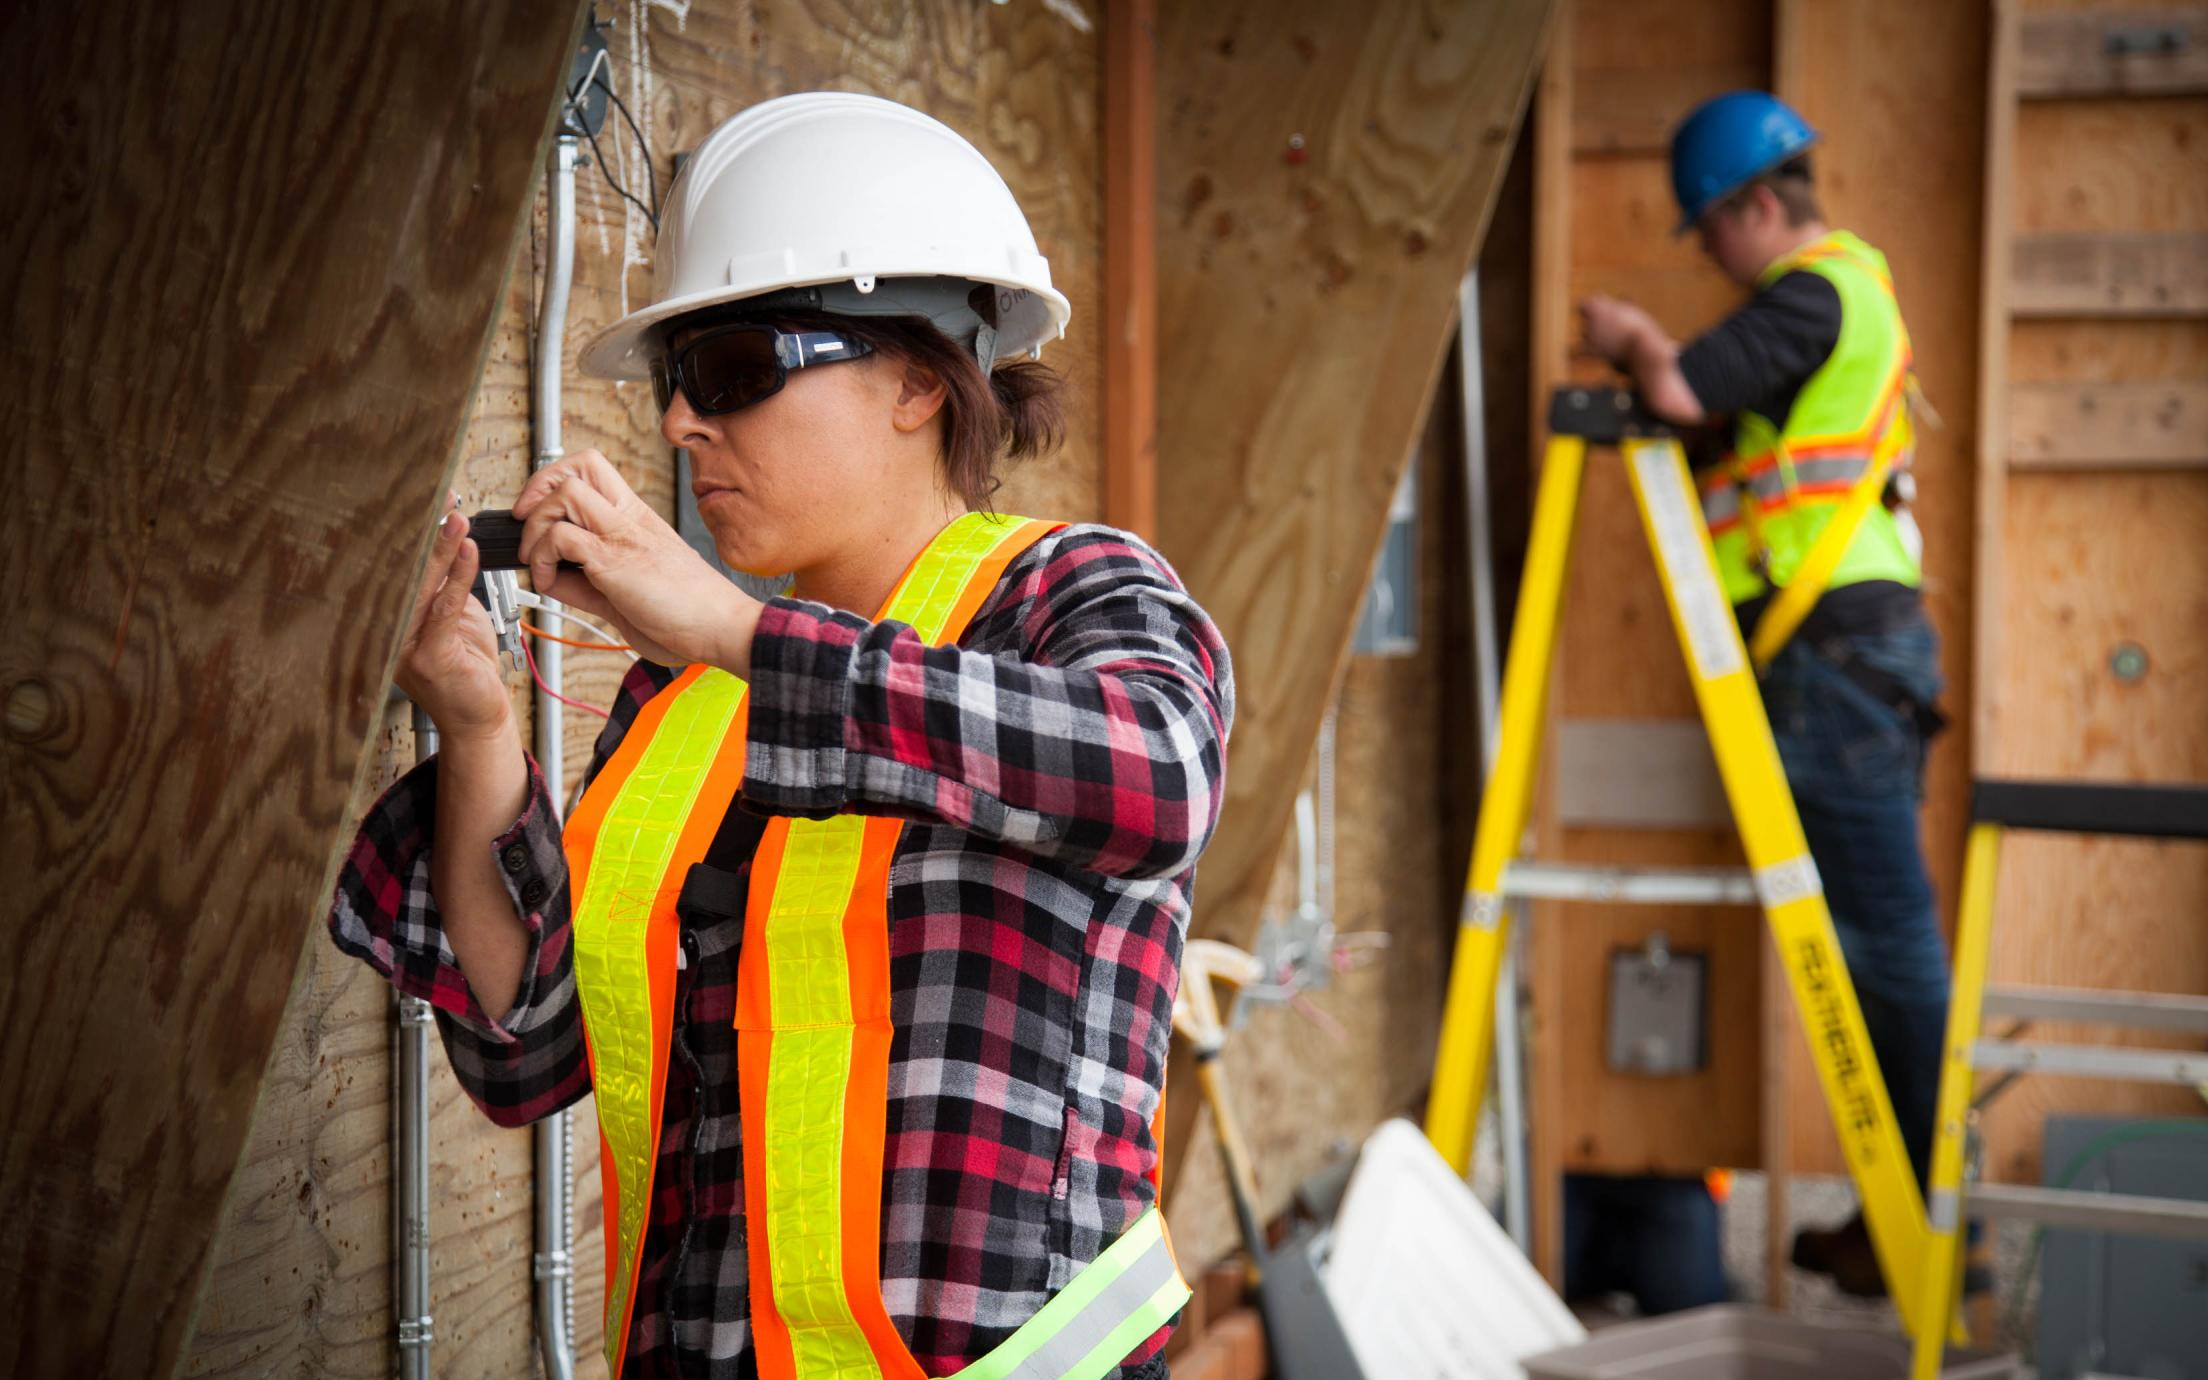 A female Electrical Apprenticeship students working on a construction site